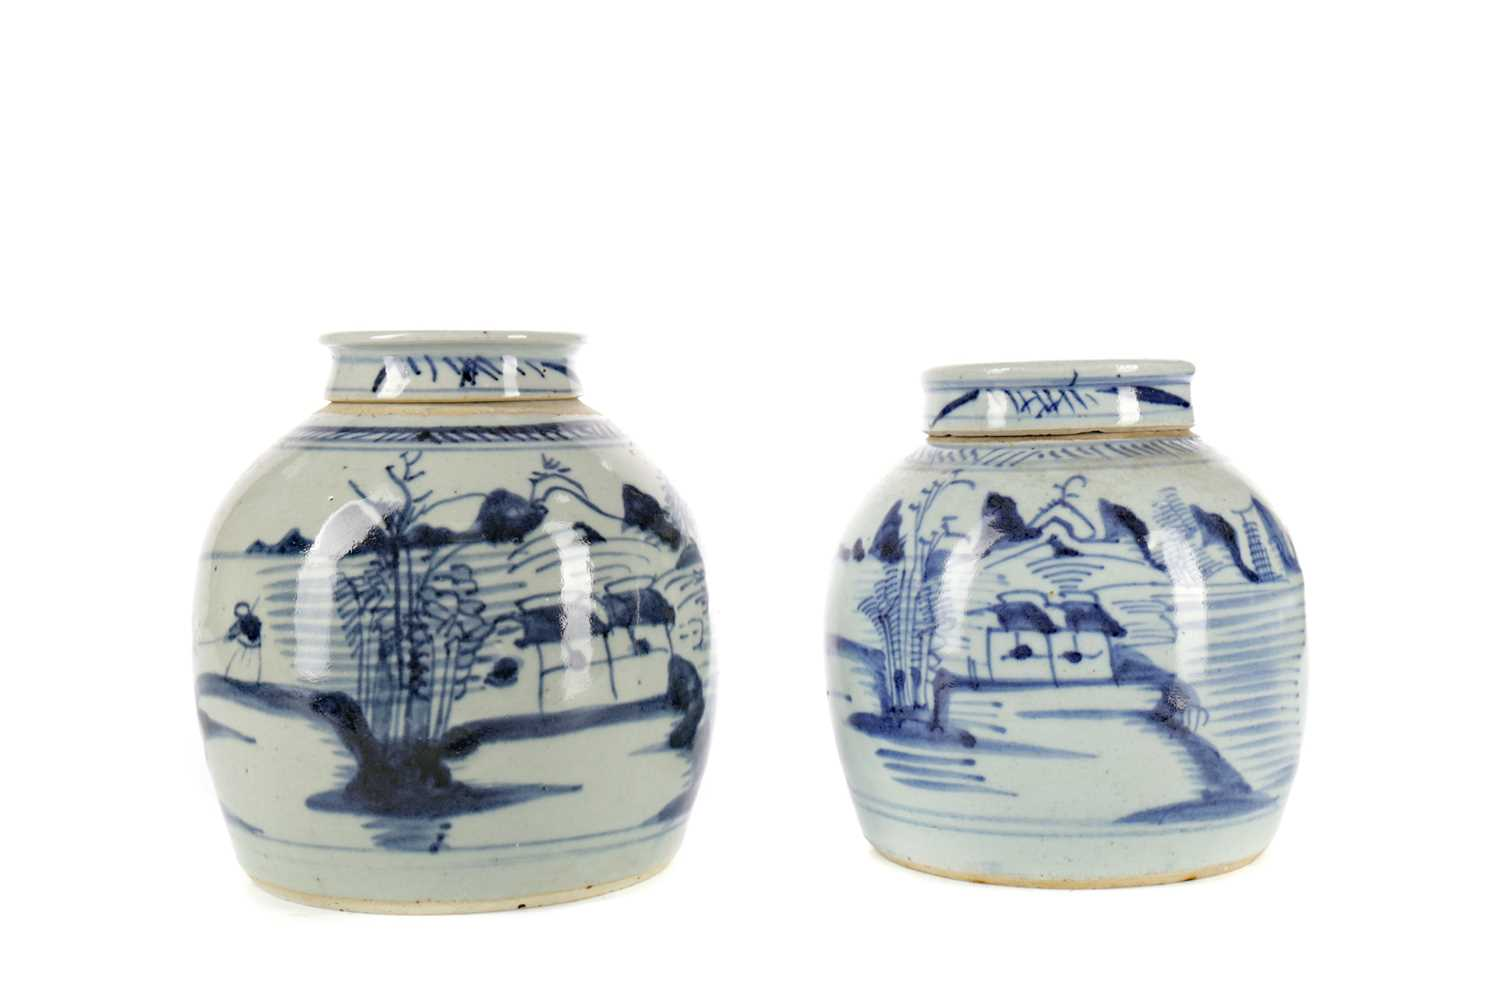 Lot 731 - A LOT OF TWO EARLY 20TH CENTURY CHINESE GINGER JARS AND COVERS